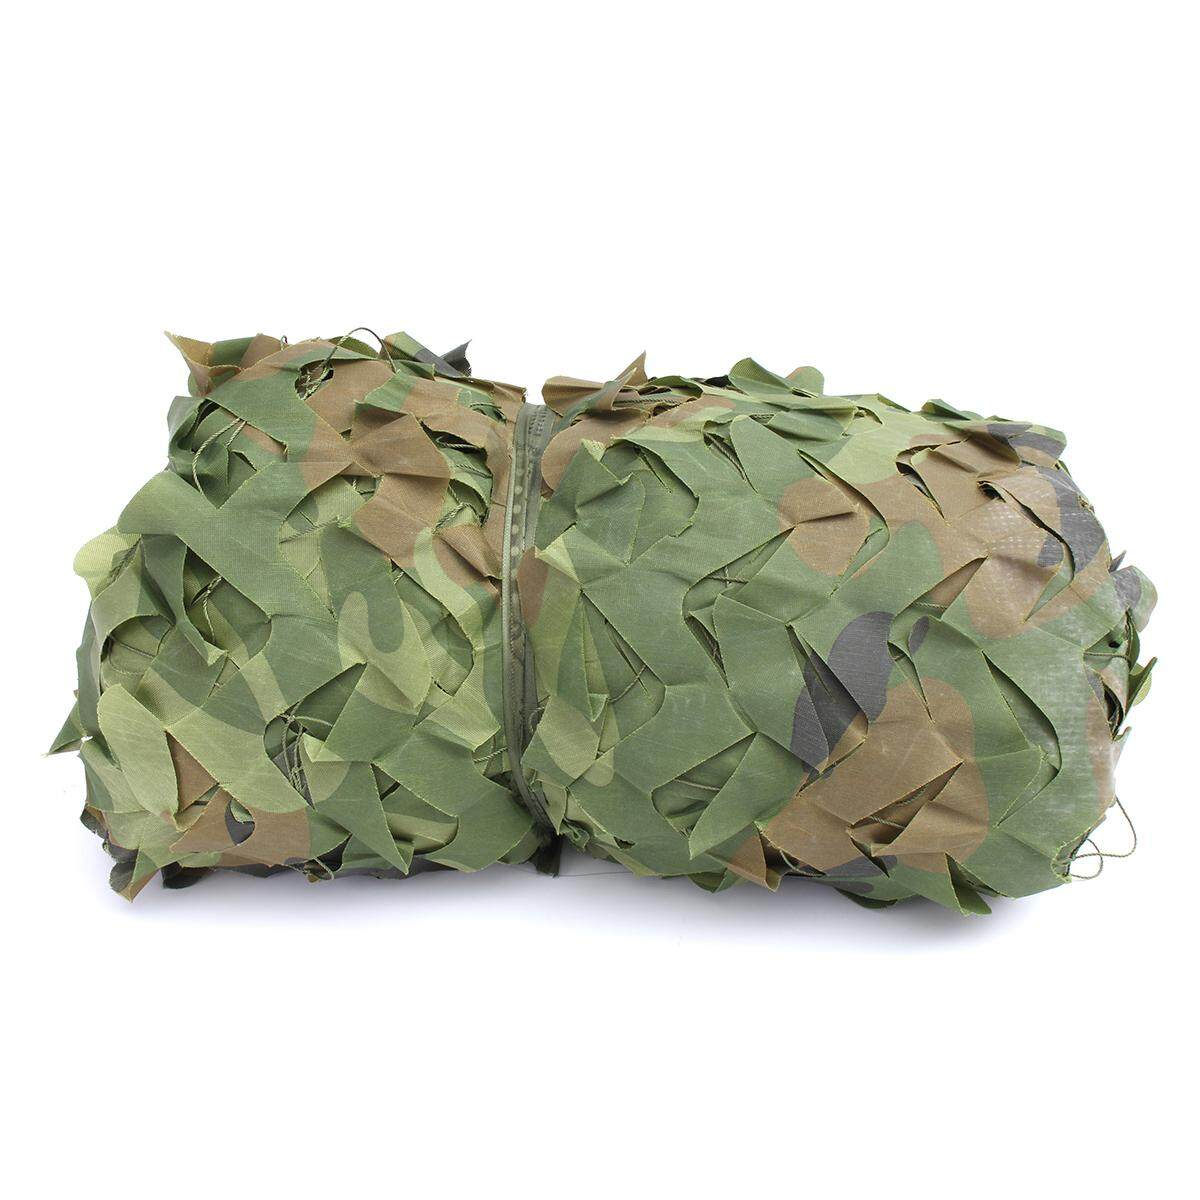 Woodland Leaves Camouflage Netting Army Camo Hunting Hide Camp Cover Net 1.5X10M